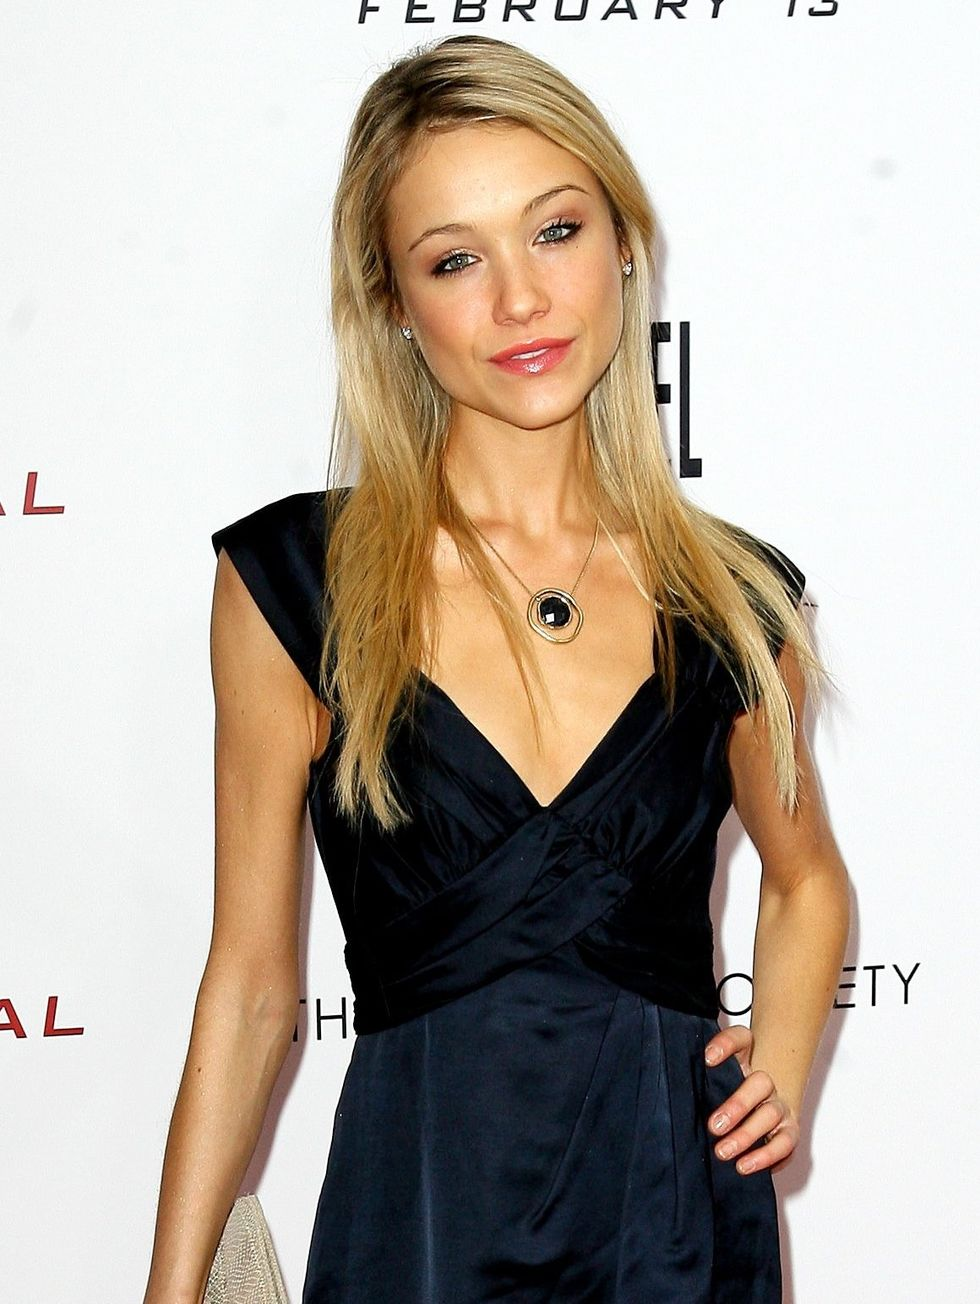 katrina-bowden-the-international-premiere-in-new-york-city-01